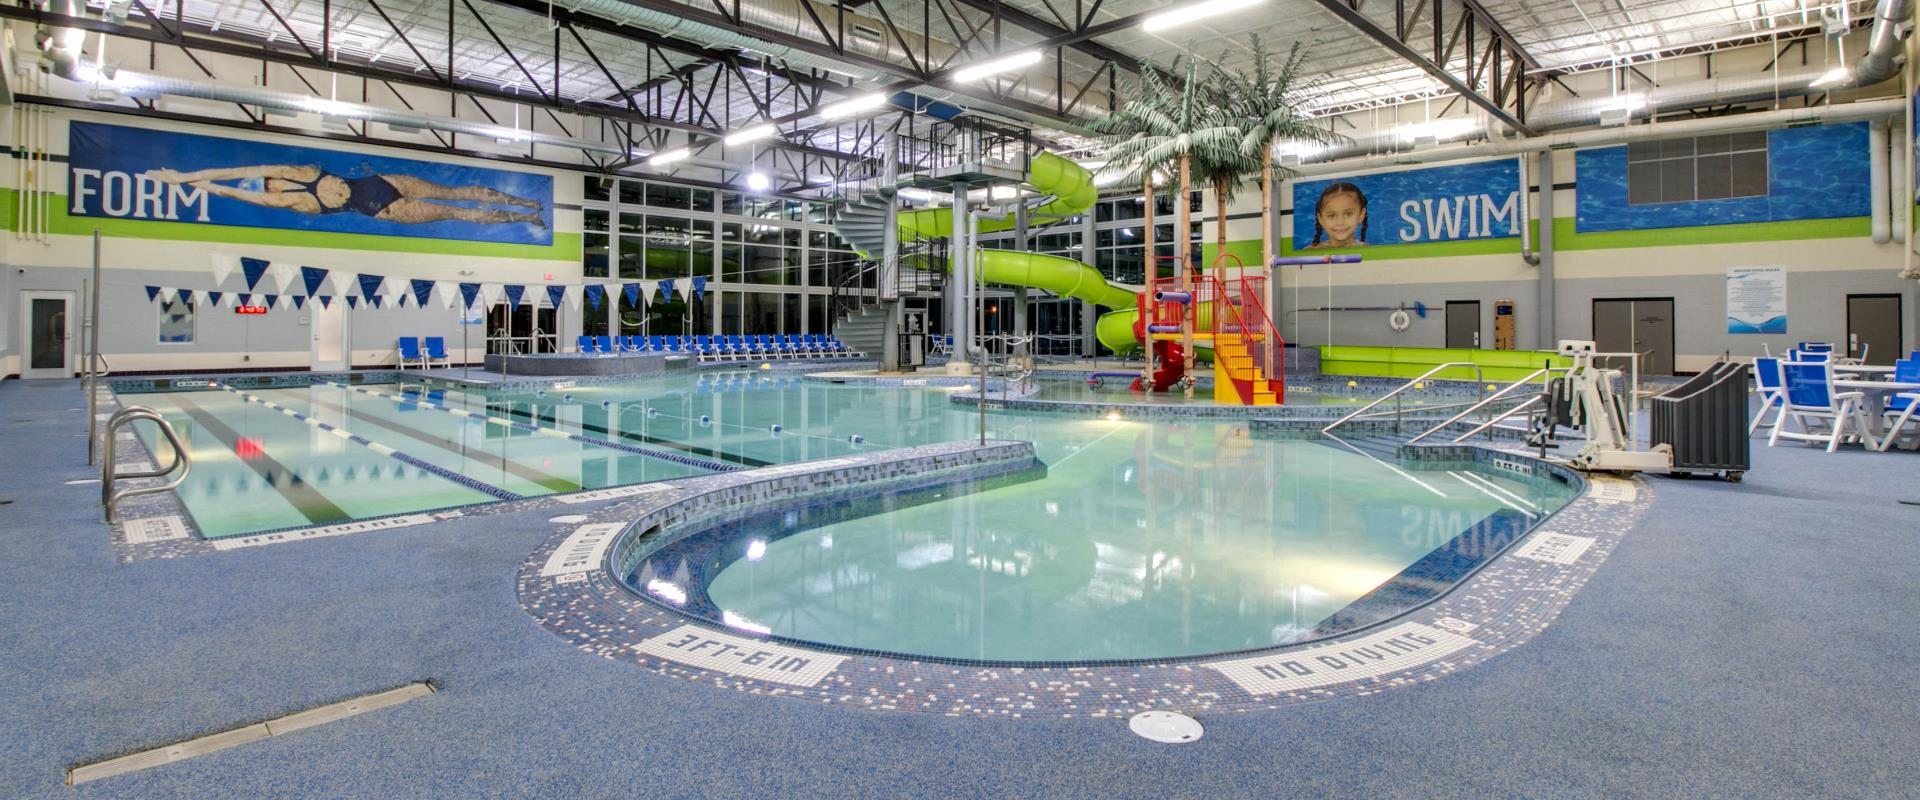 Indoor Pool Gym